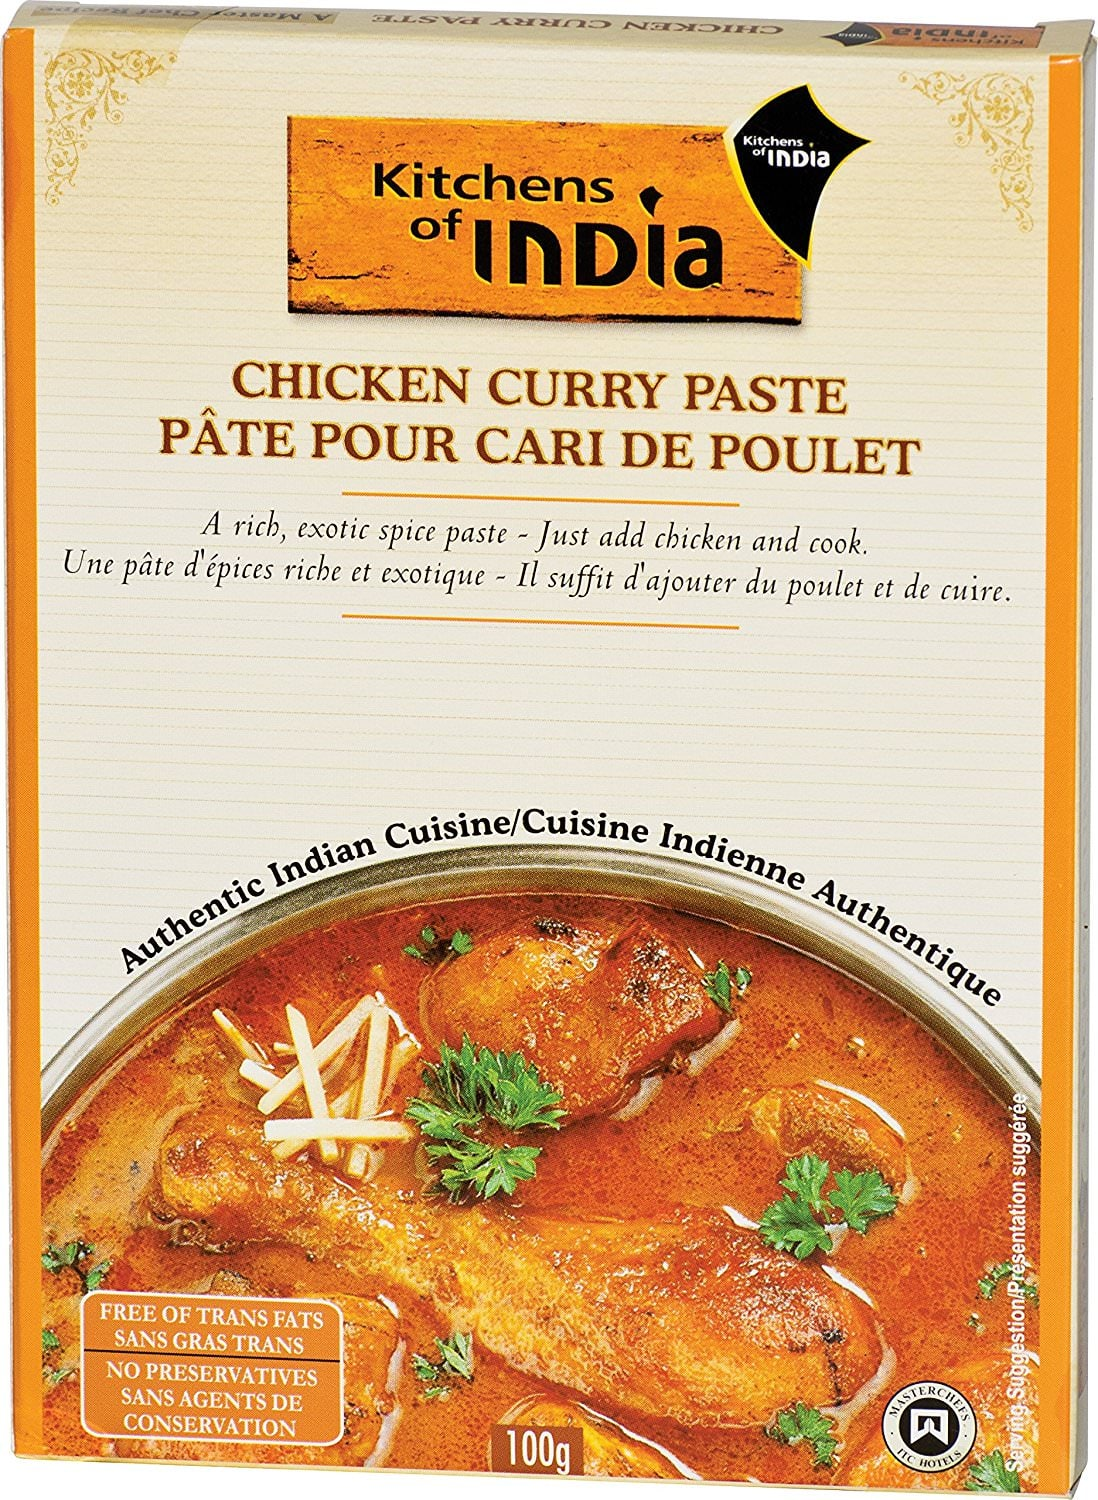 6-Pack of Kitchens of India Chicken Curry Paste for $8.94 at Amazon *Add-on Item*